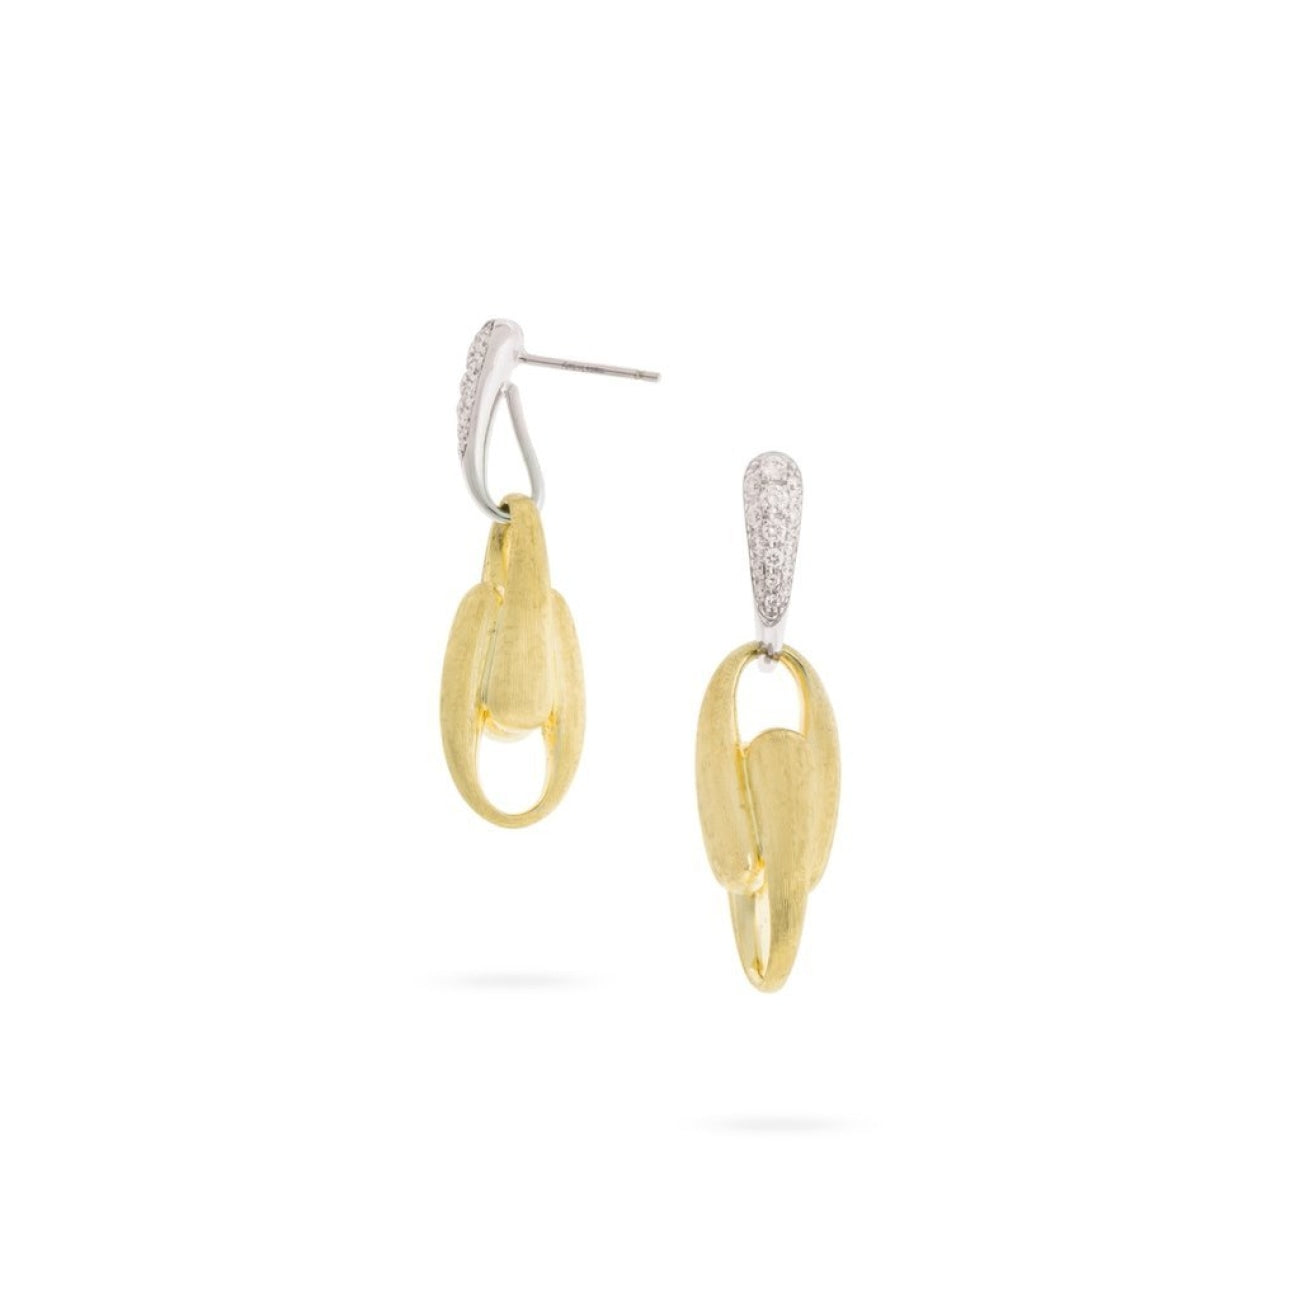 Marco Bicego Jewelry - 18K Yellow Gold and Diamond Link Drop Earrings | Manfredi Jewels